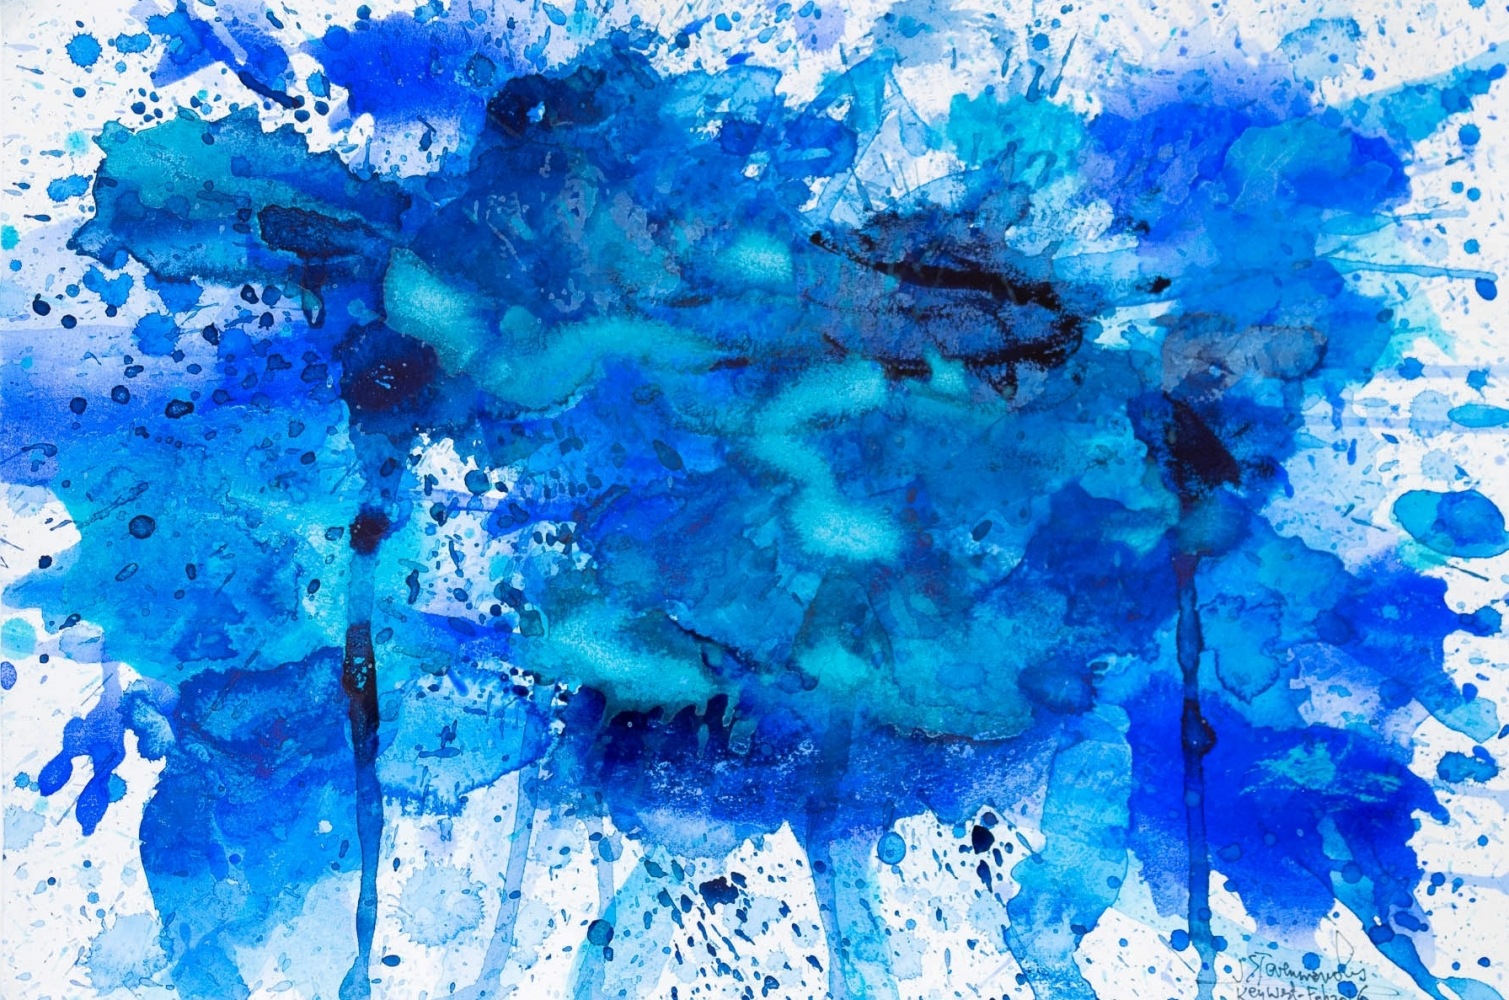 J. Steven Manolis, Splash-Key West (12.16.02), 2016, Watercolor, Acrylic and Gouache on paper, 12 x 16 inches, blue abstract expressionism art